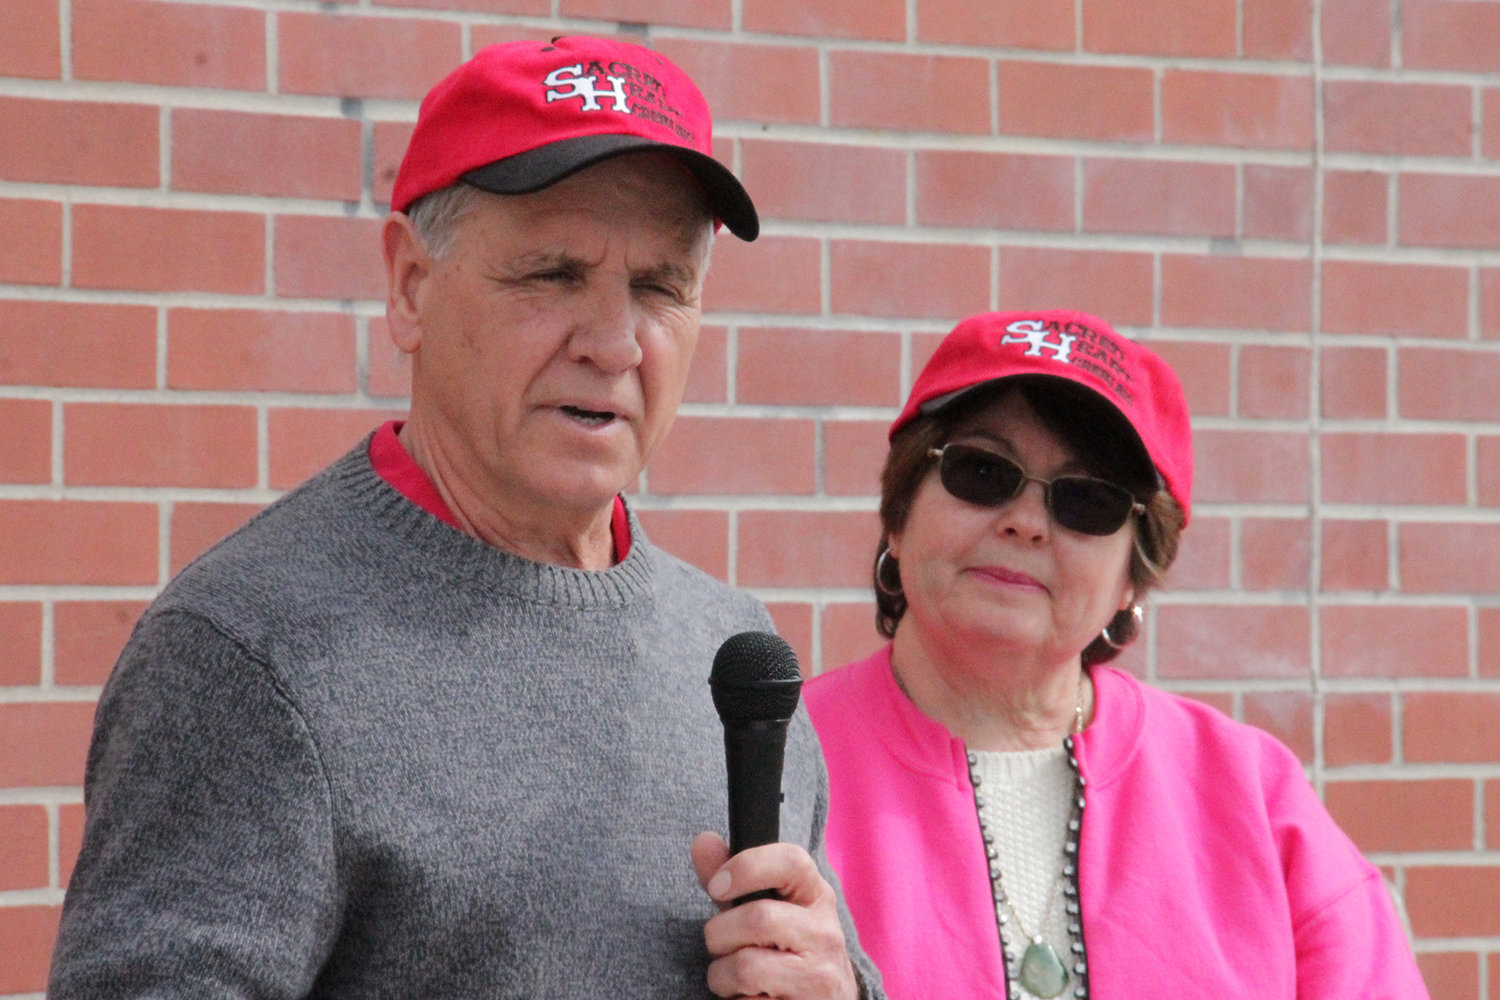 Sacred Heart parishioners Steve and Karen Ellebracht address students, staff and friends of Sacred Heart School when ground was broken for a steel canopy that holds solar panels for the school. The couple made a large contribution toward the project.